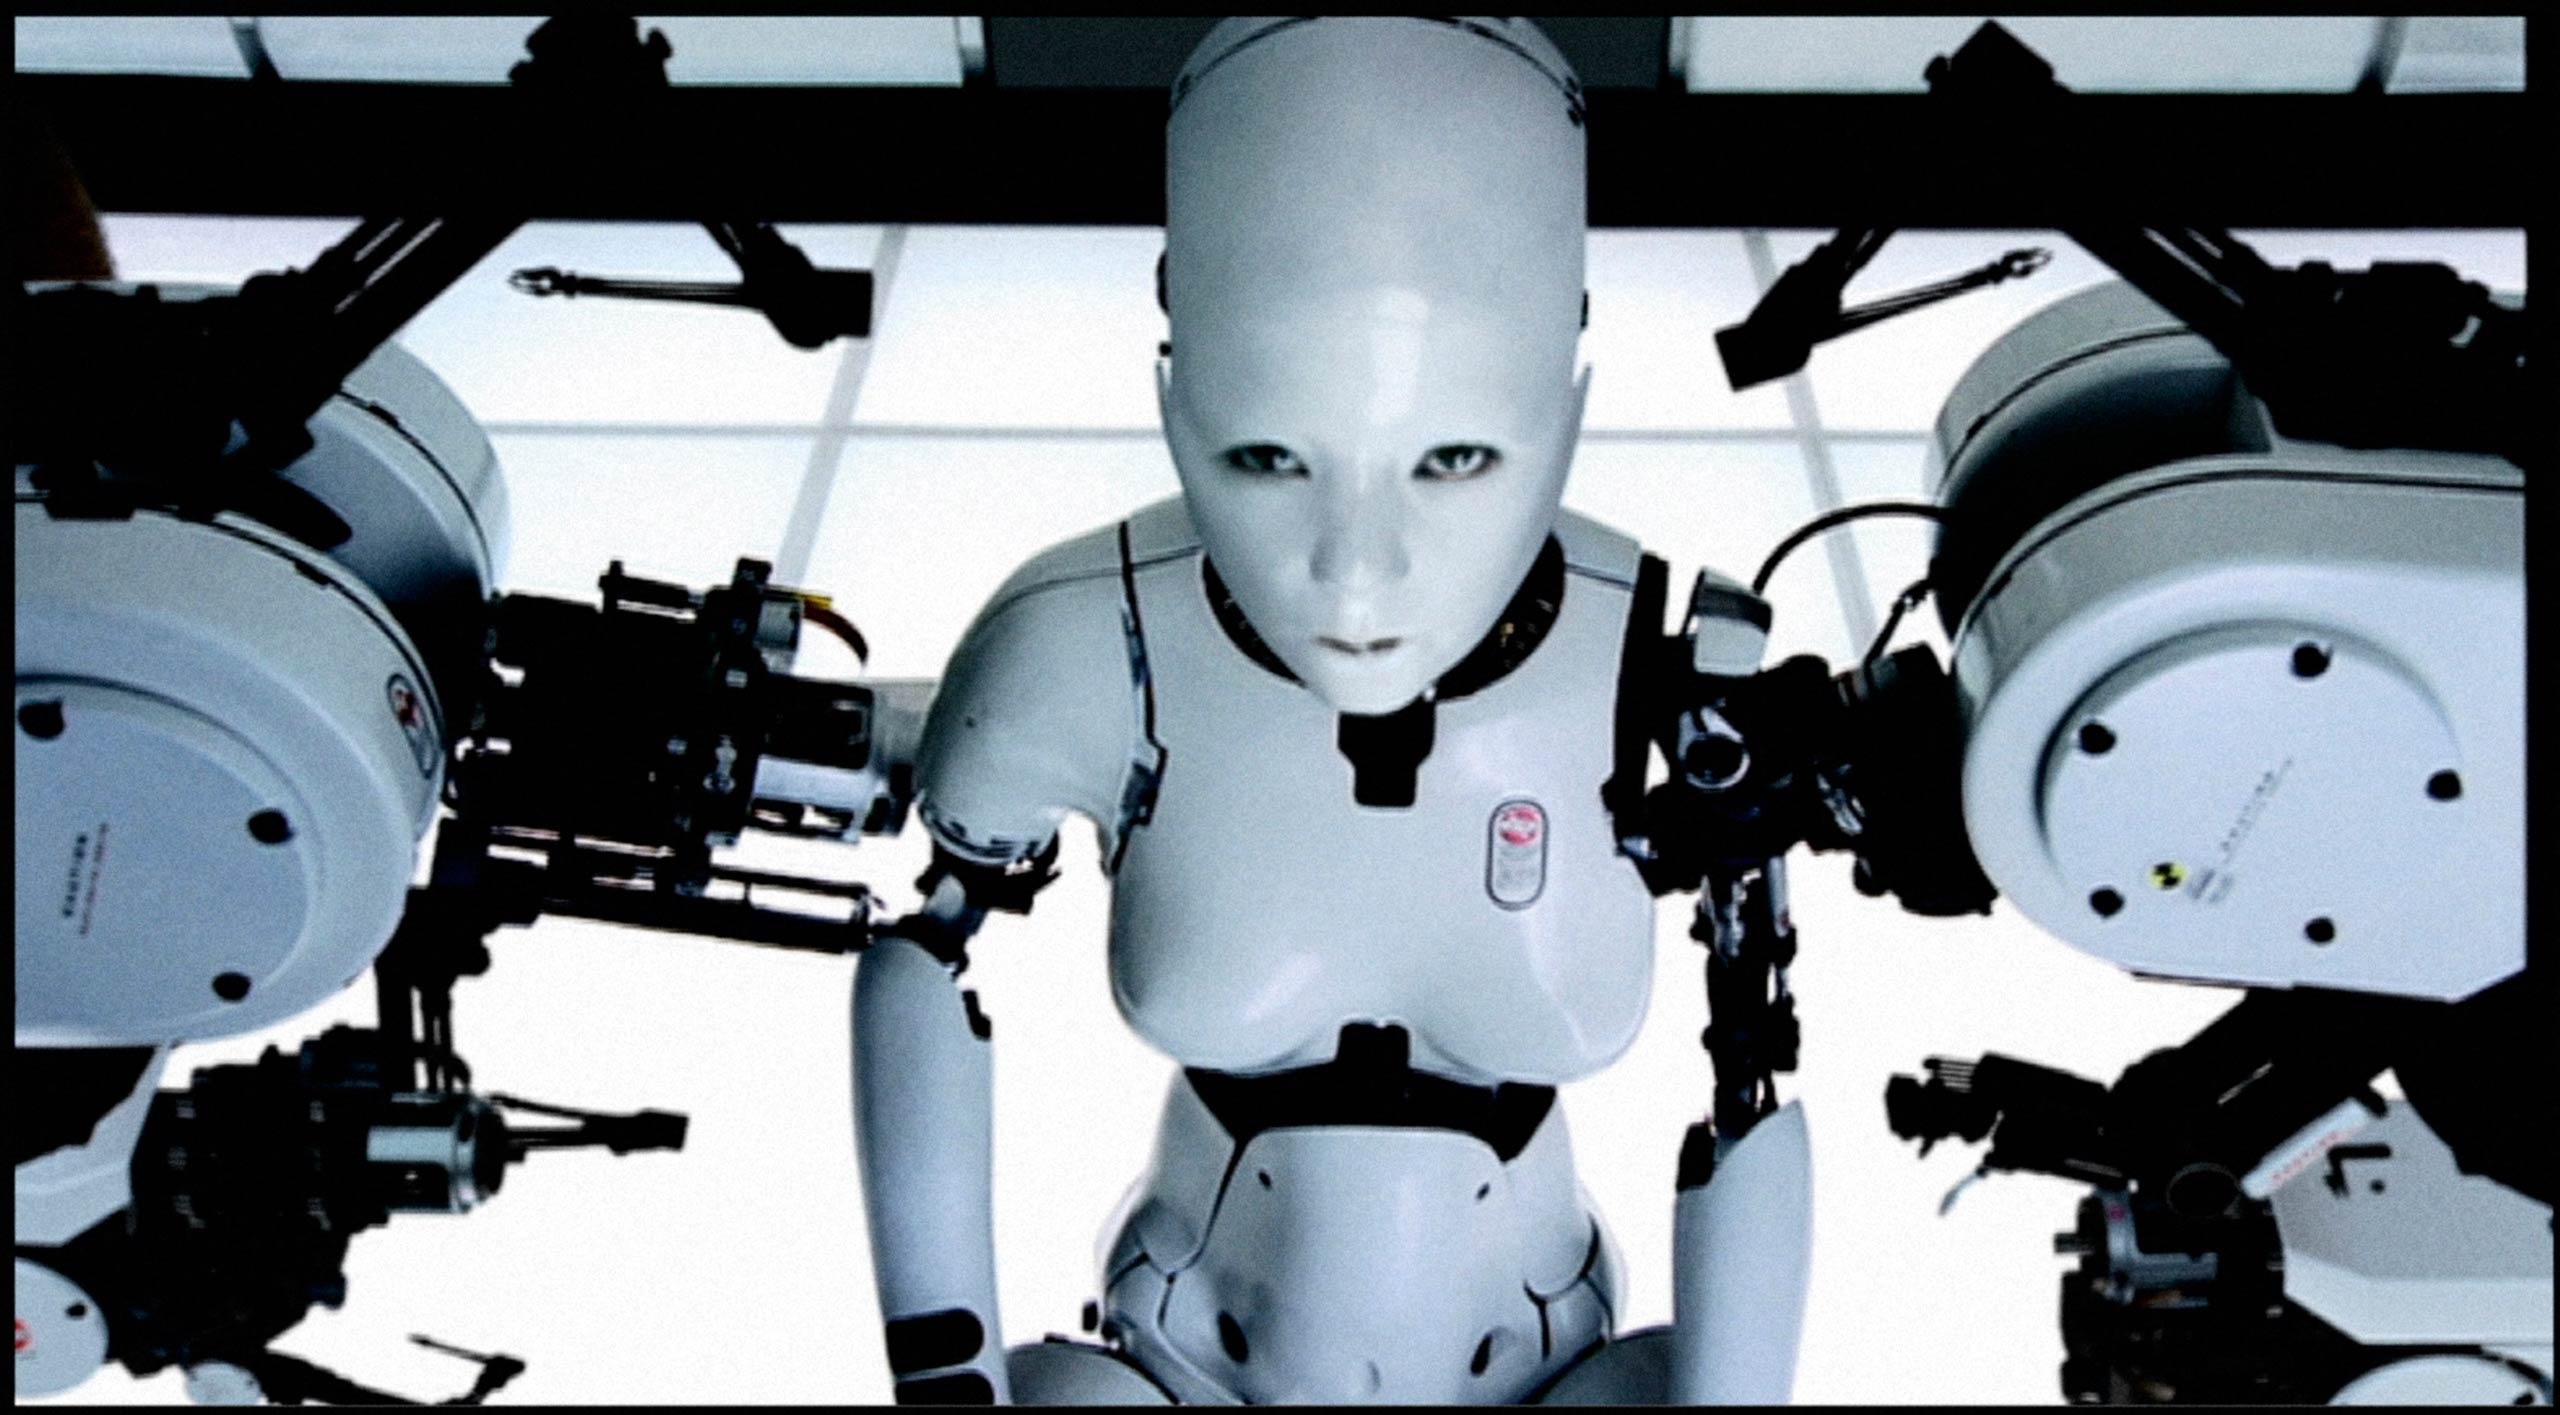 Directed by Chris Cunningham